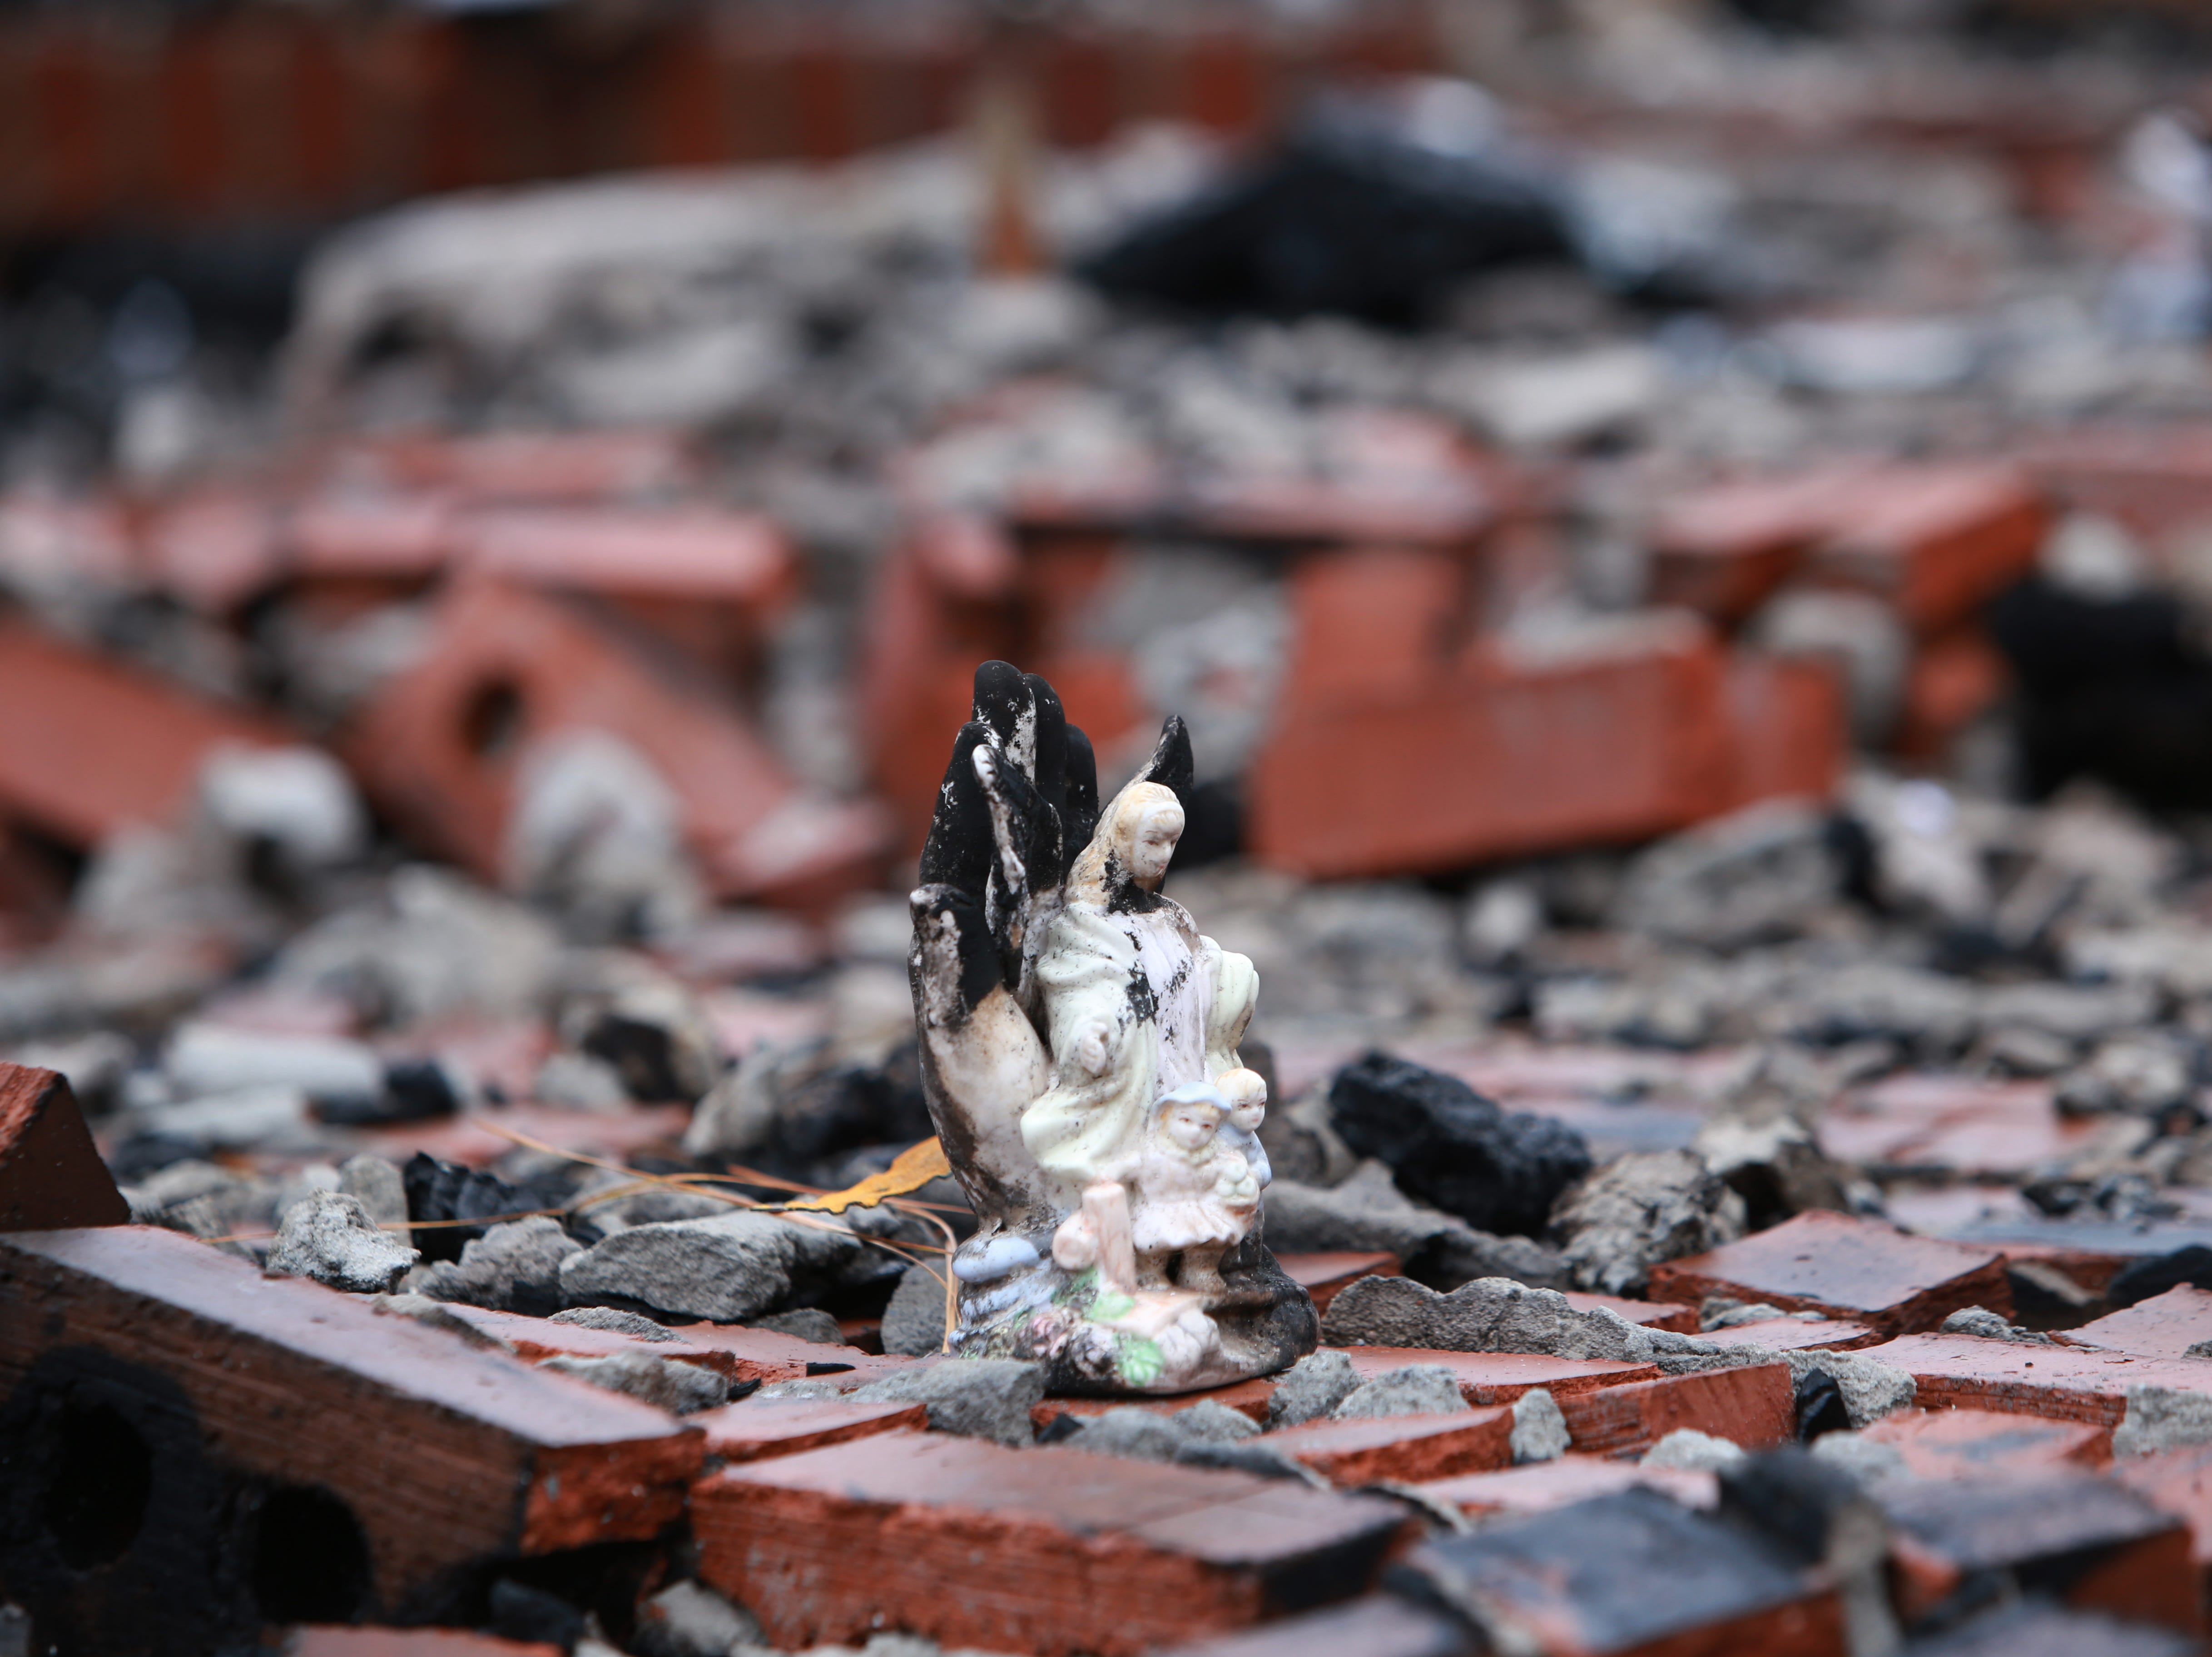 An angel figurine was one of the possessions left in the rubble of a house fire that destroyed the Haas home in Kiln, Mississippi, on Nov. 25, 2018.